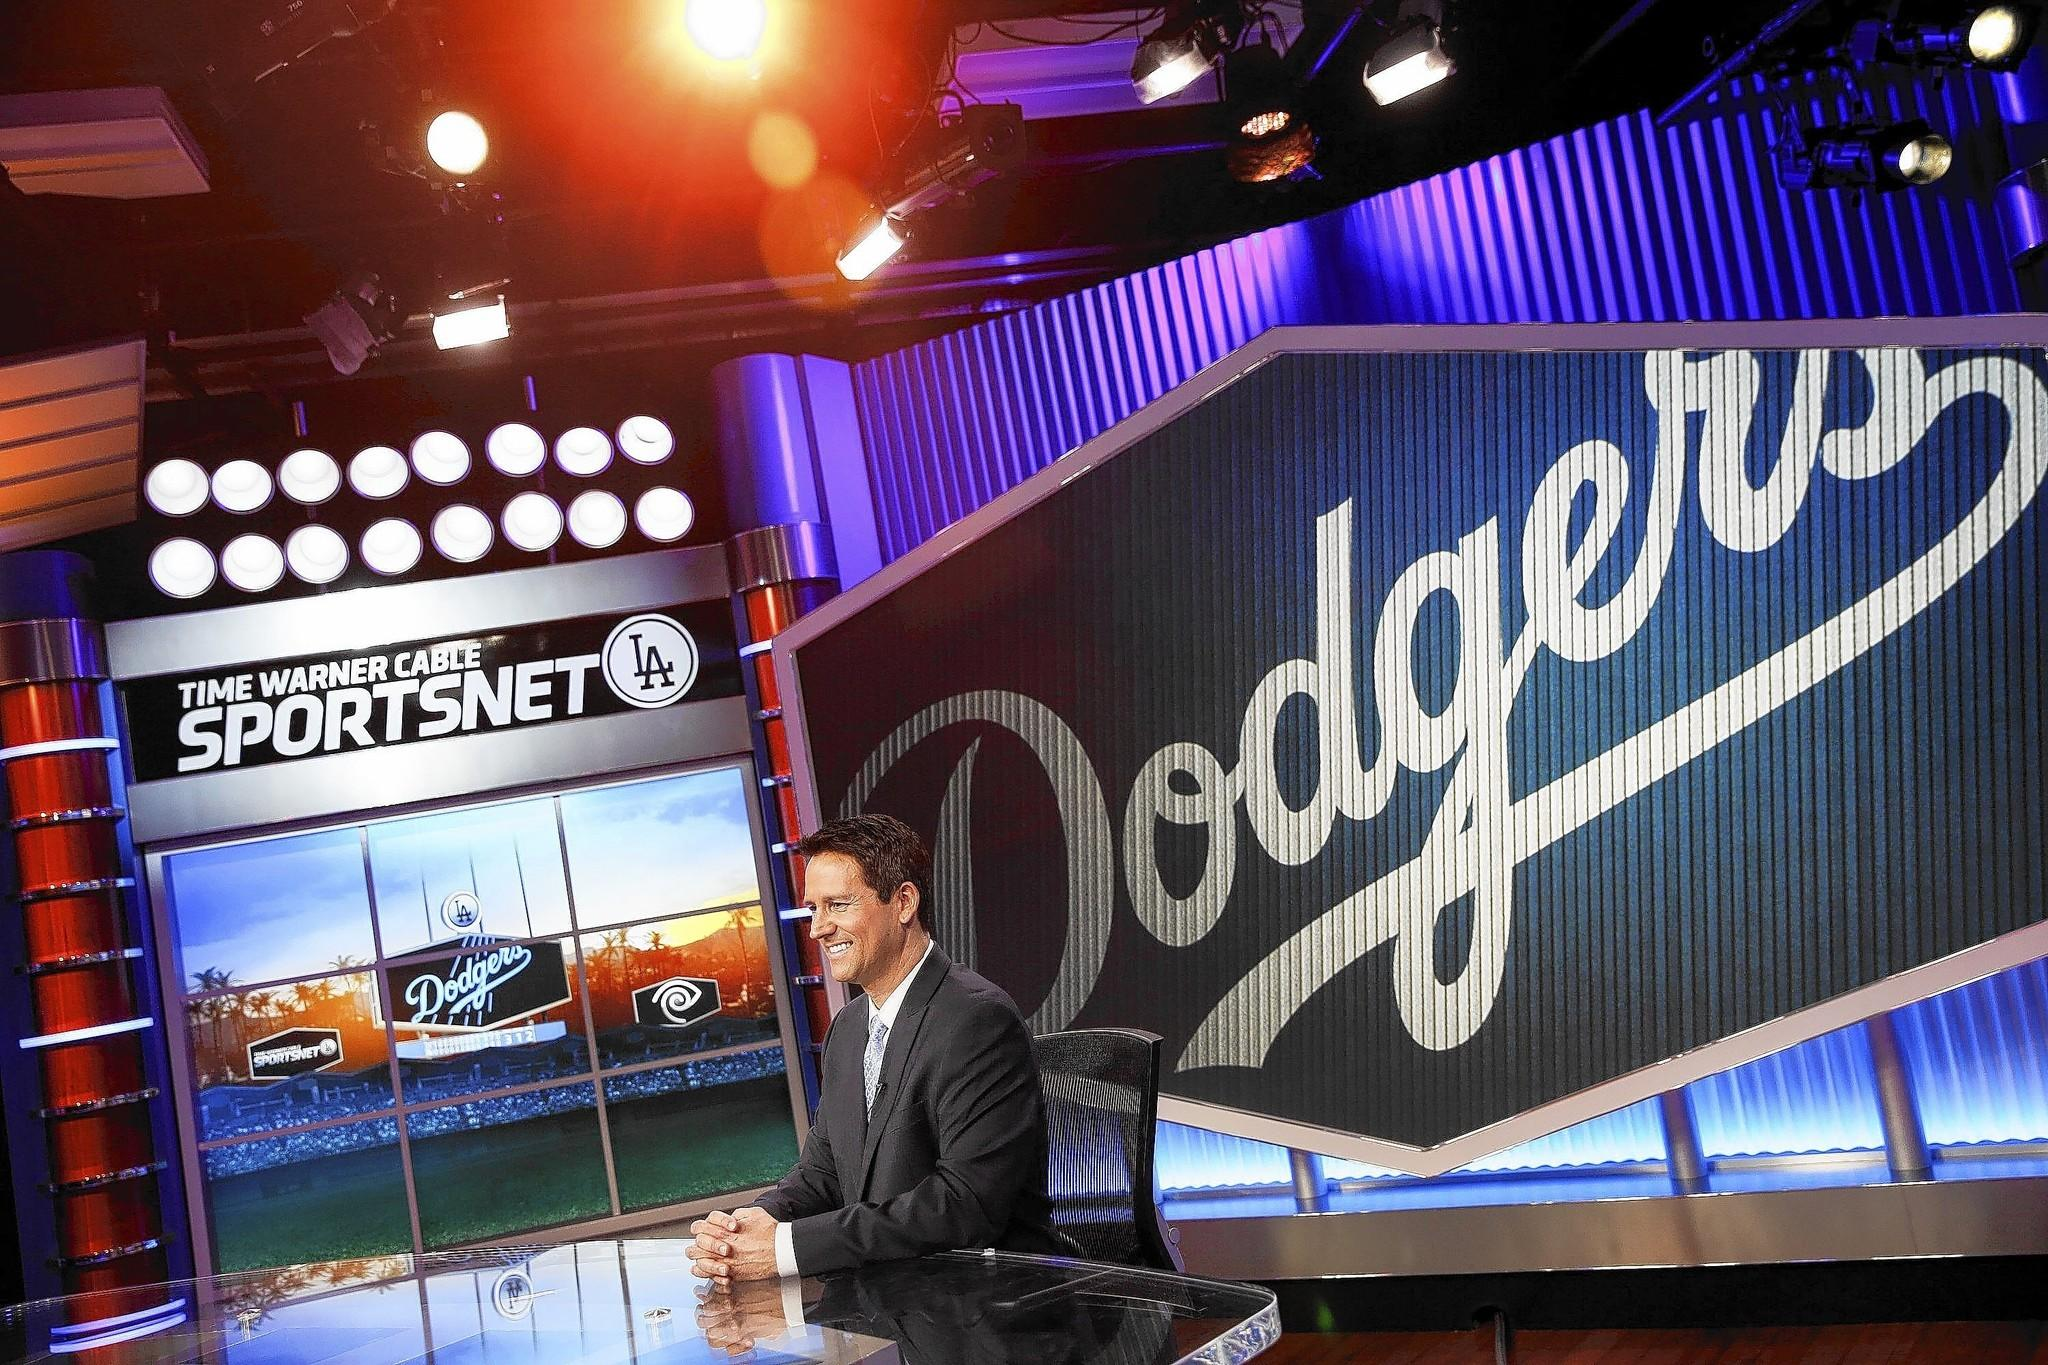 John Hartung will be the main studio anchor for SportsNet LA. A Time Warner Cable official said DirecTV and other pay-TV companies will eventually cut deals to provide the Dodgers channel to all subscribers.